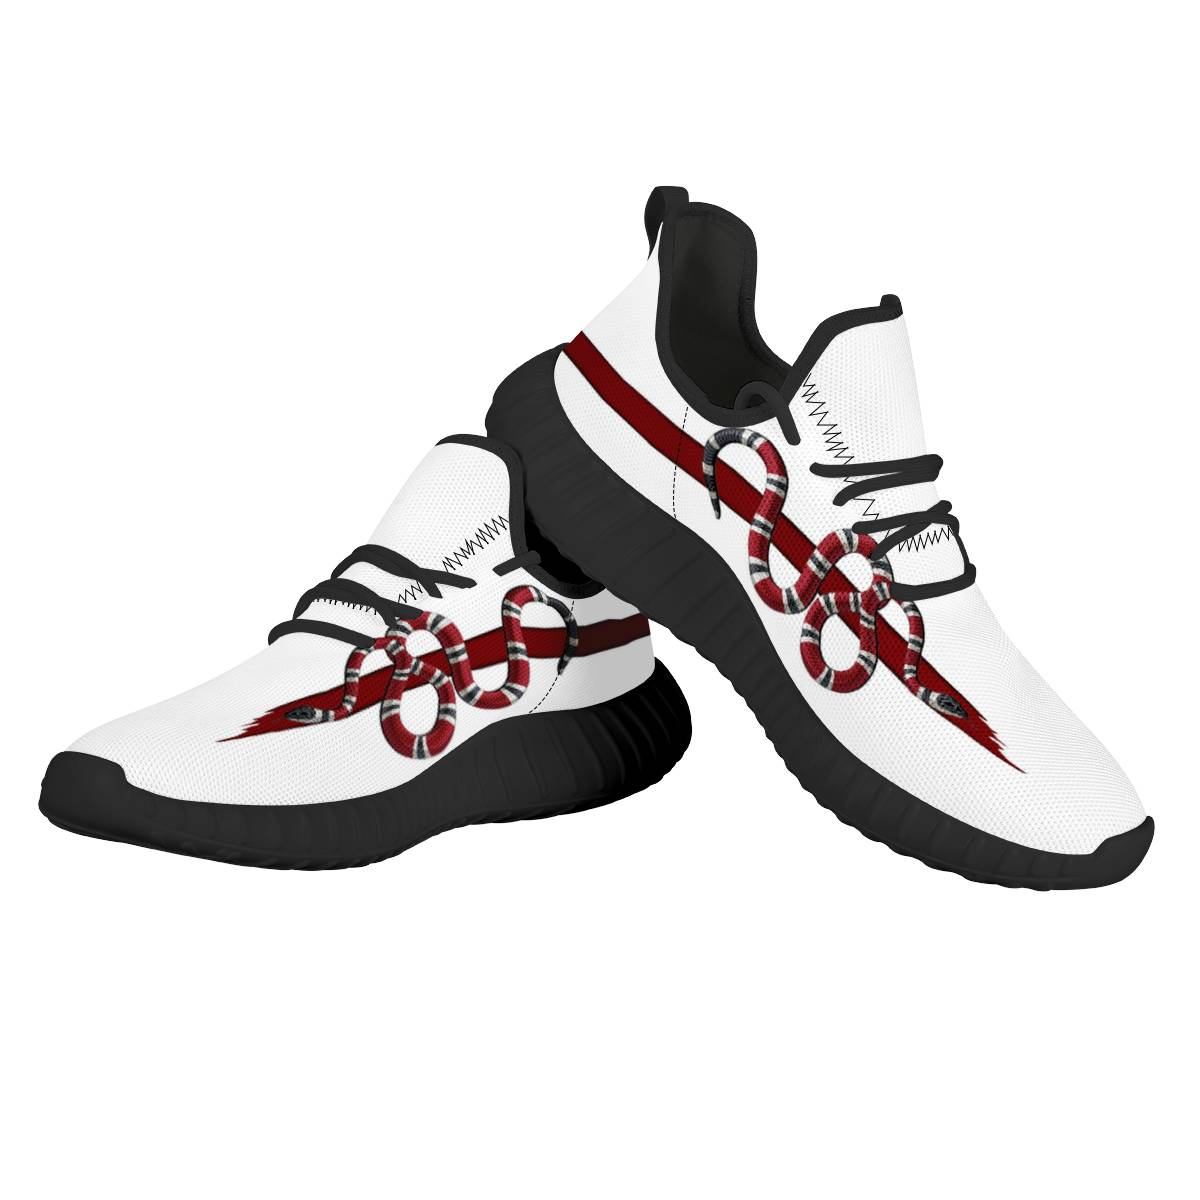 Men's Arizona Diamondbacks Mesh Knit Sneakers/Shoes 002